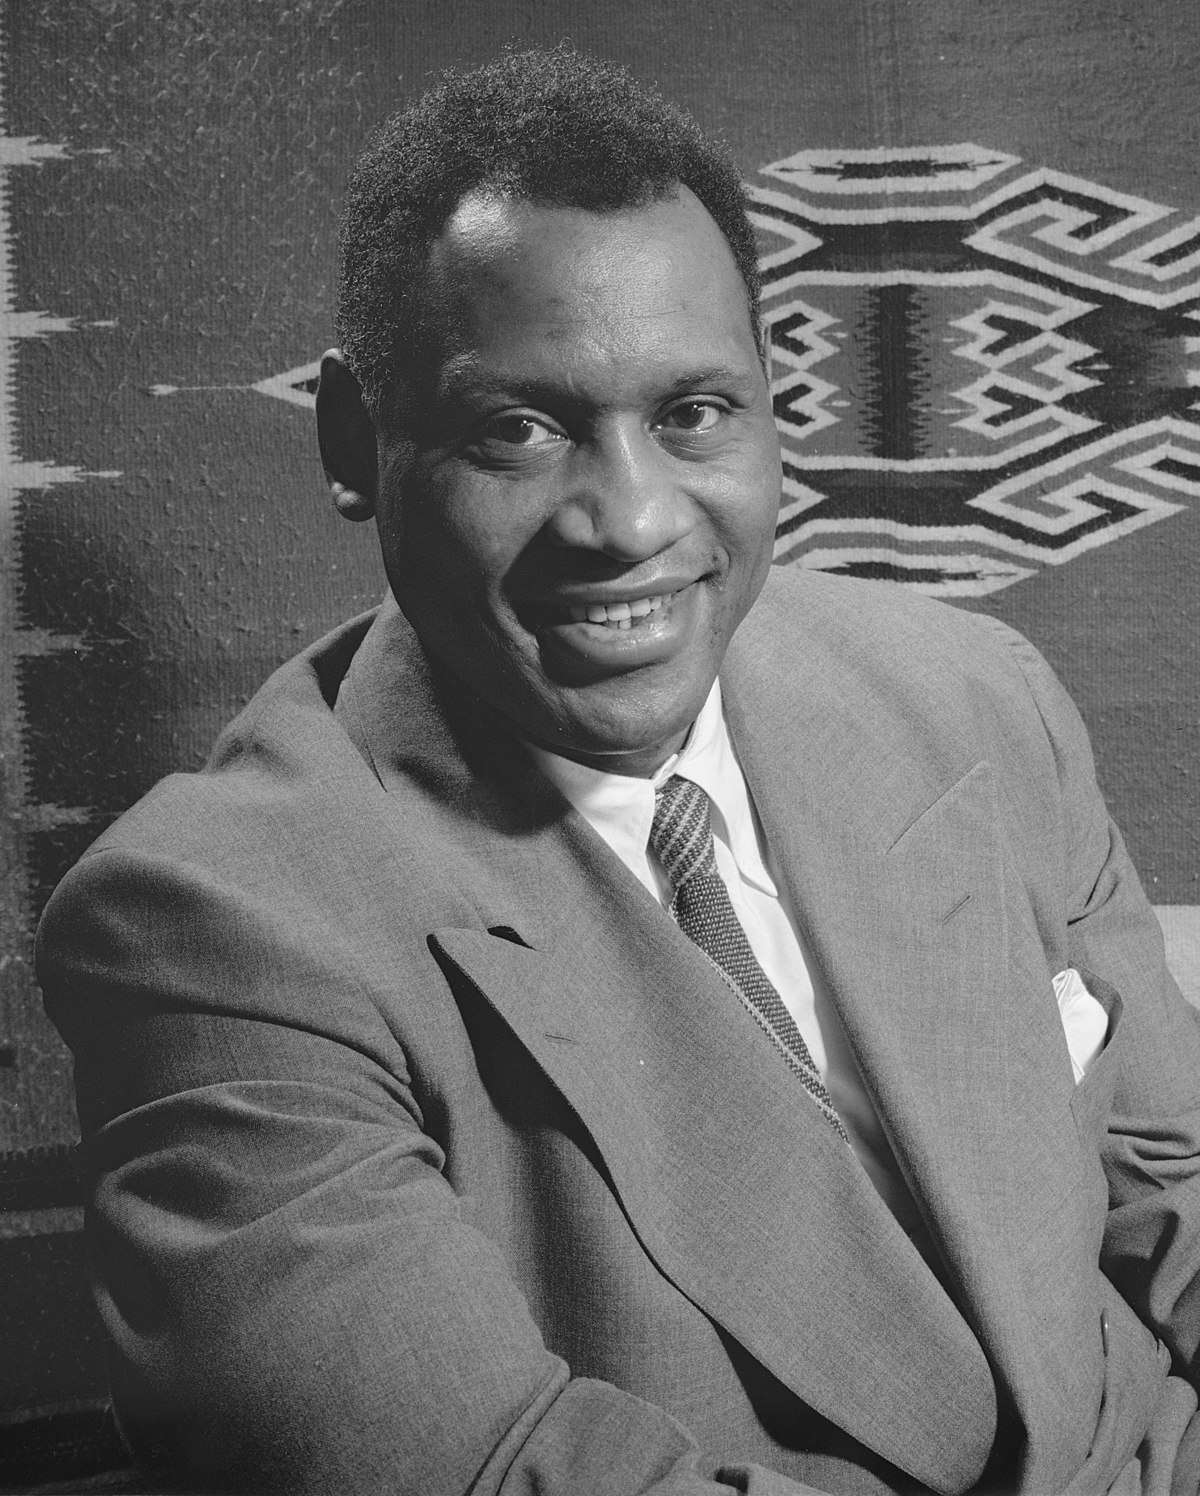 a biography of paul robeson an african american actor Paul robeson, an african american actor, singer, and social activist, was born on april 9, 1898, in princeton, new jersey, and died on january 23, 1976, in philadelphia, pennsylvania during the 1930s and 1940s, robeson gained international renown as a concert singer and stage actor.